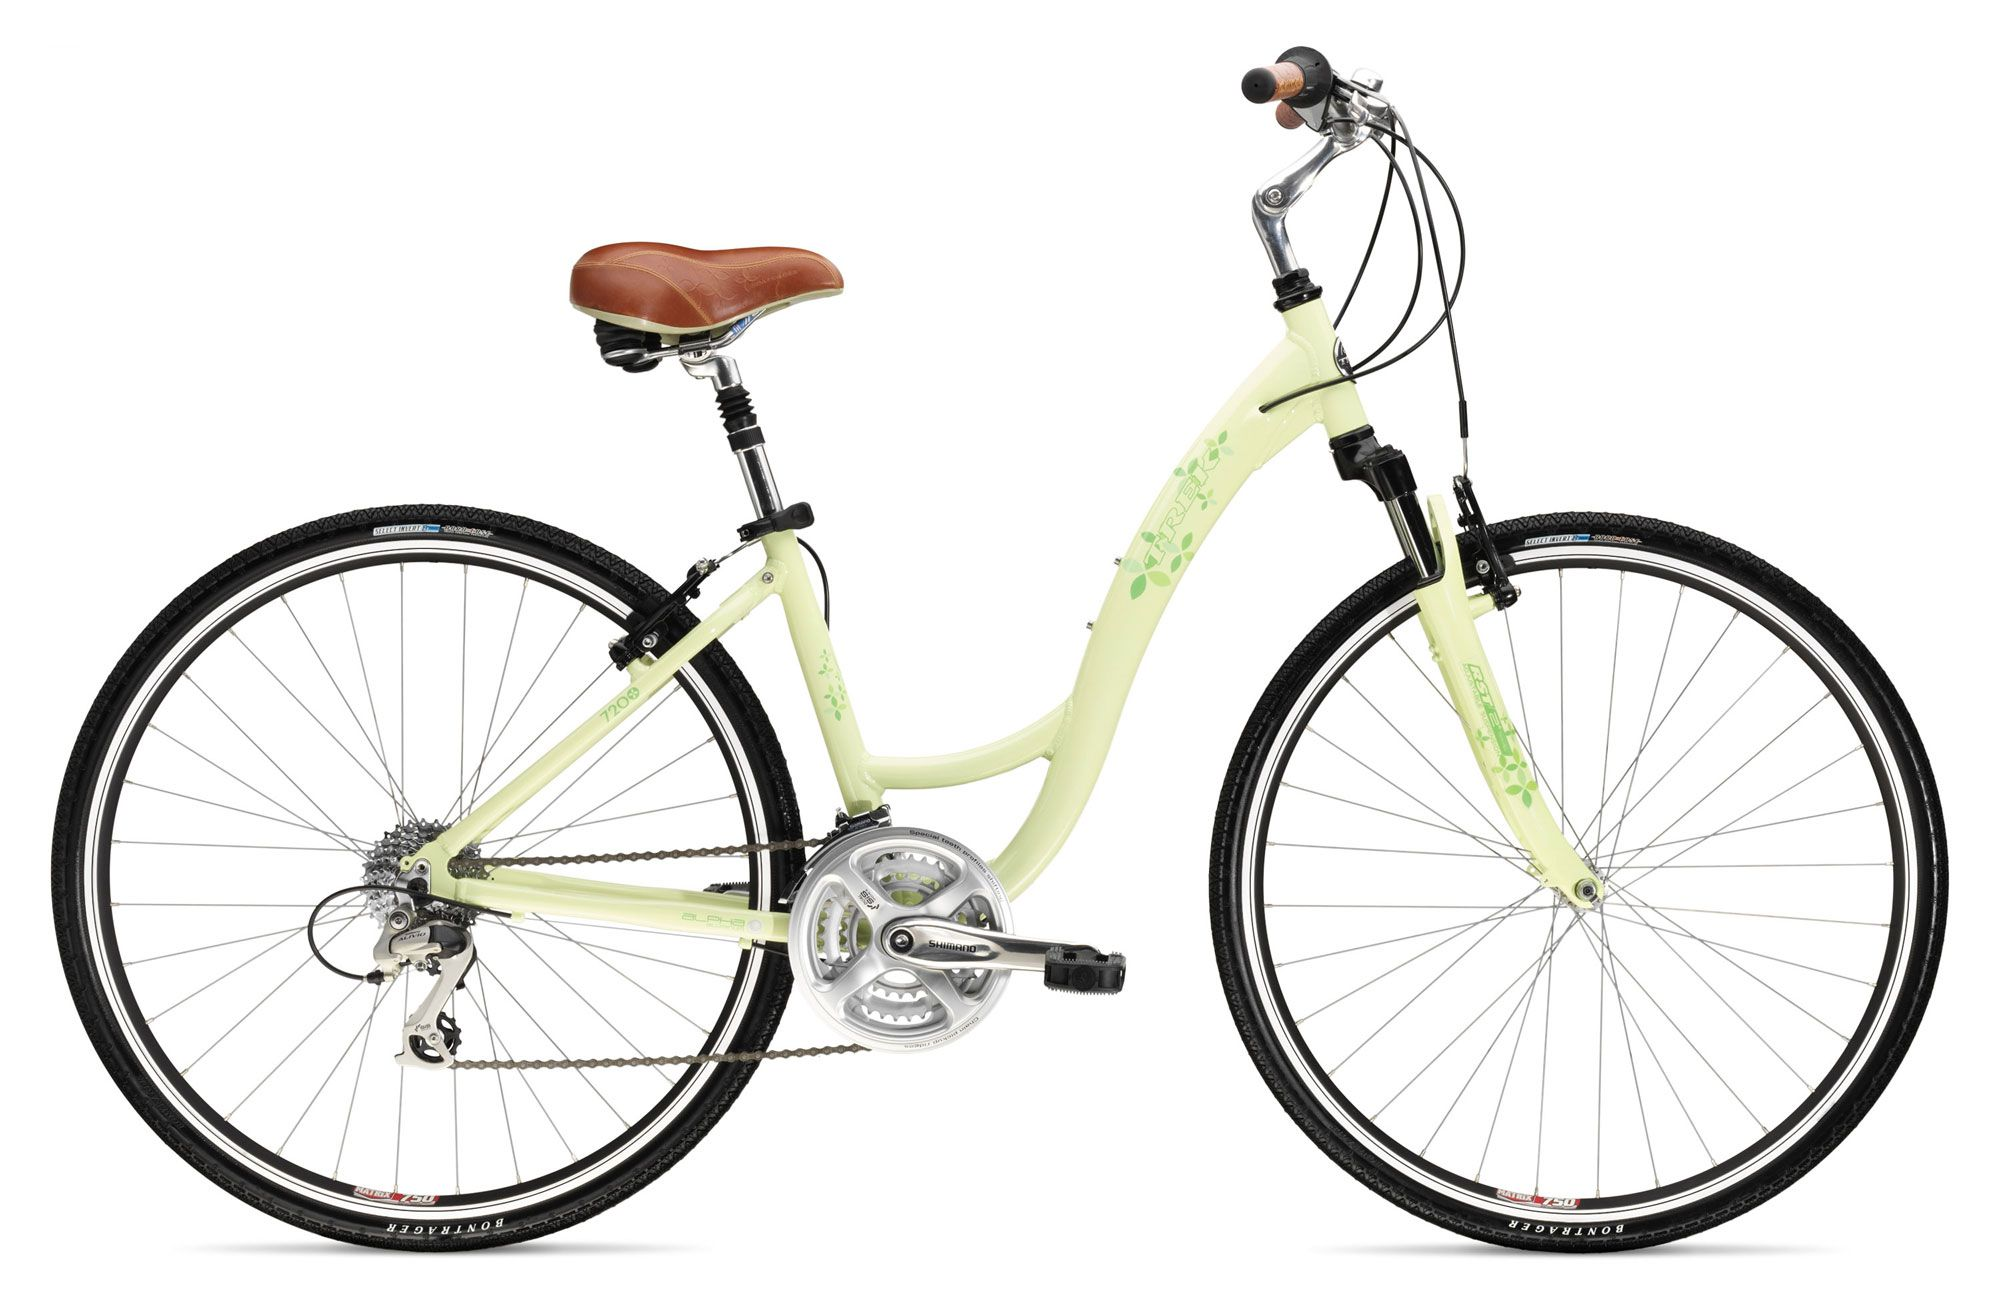 Though My Boyfriend Bought Me A Cruiser For Putting Around Town I